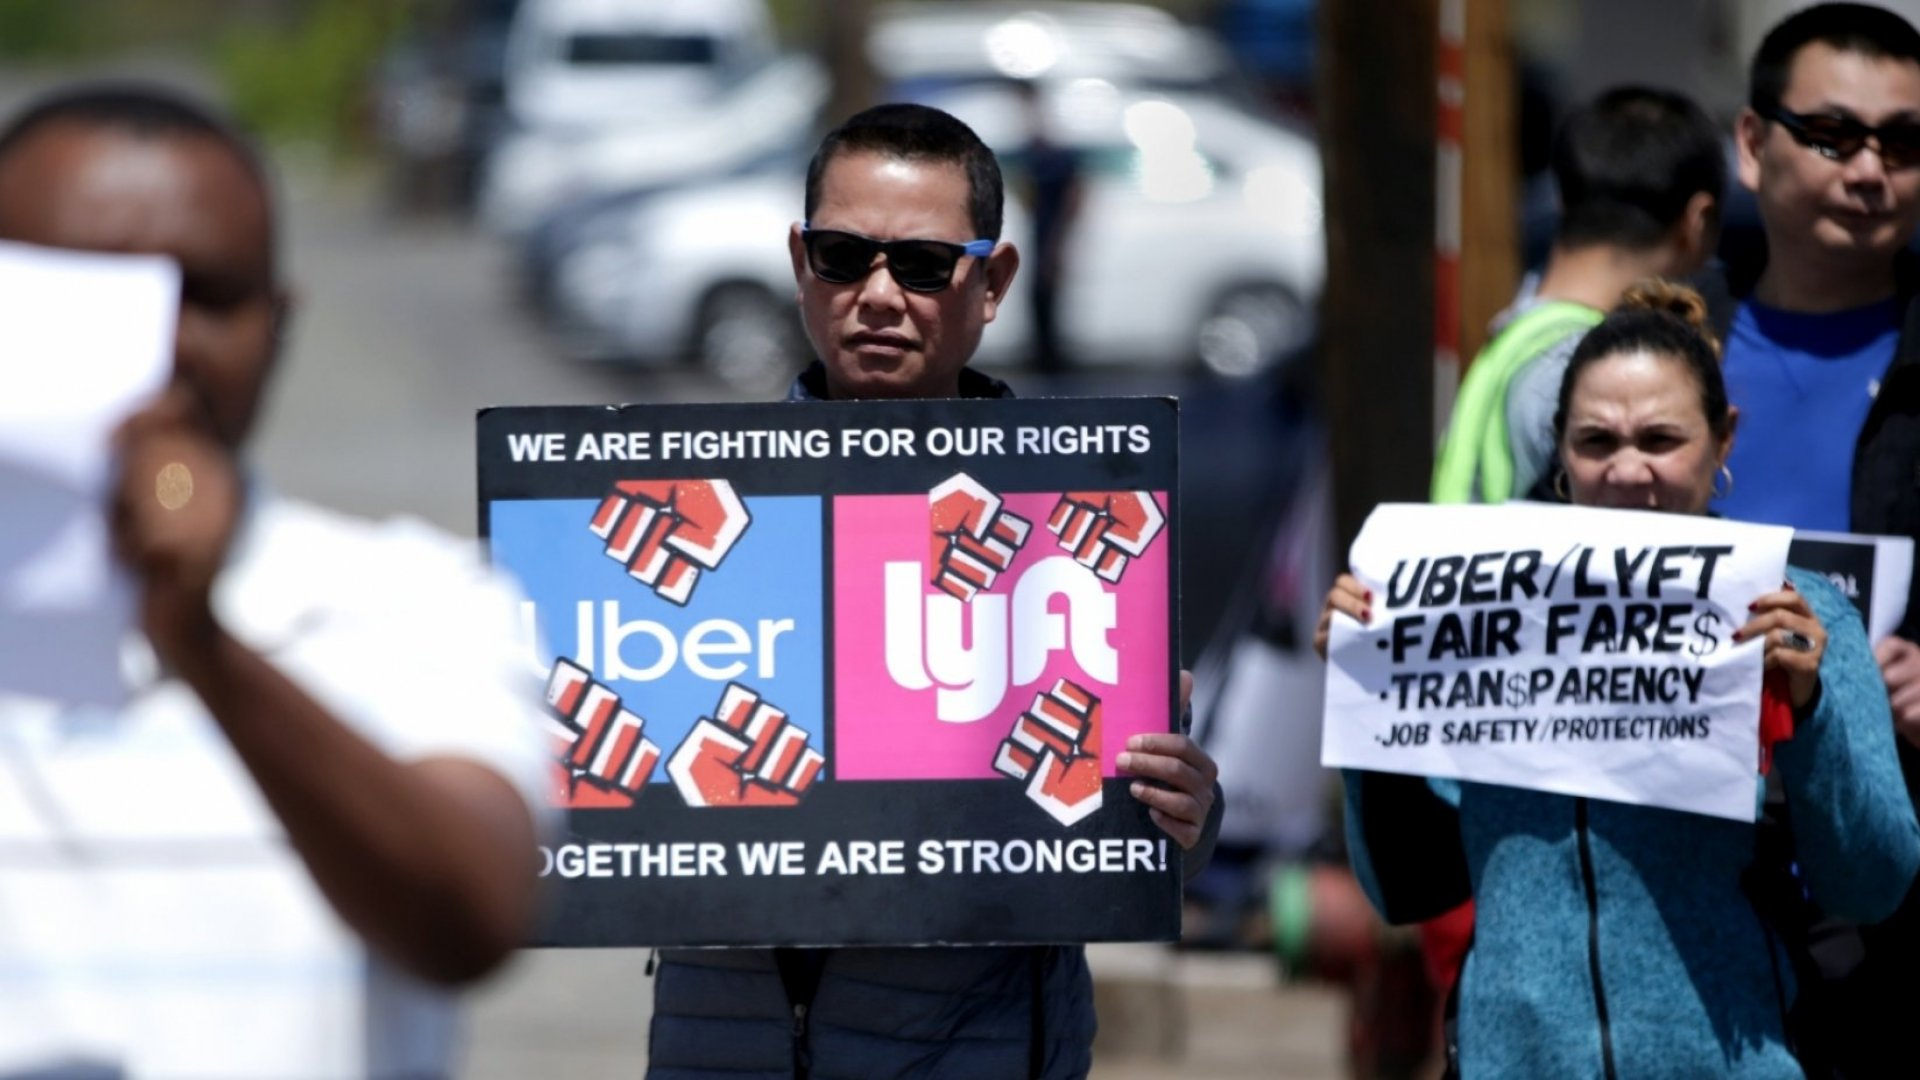 The Big Mistake by Uber and Lyft That Led to Californias New Employment Law